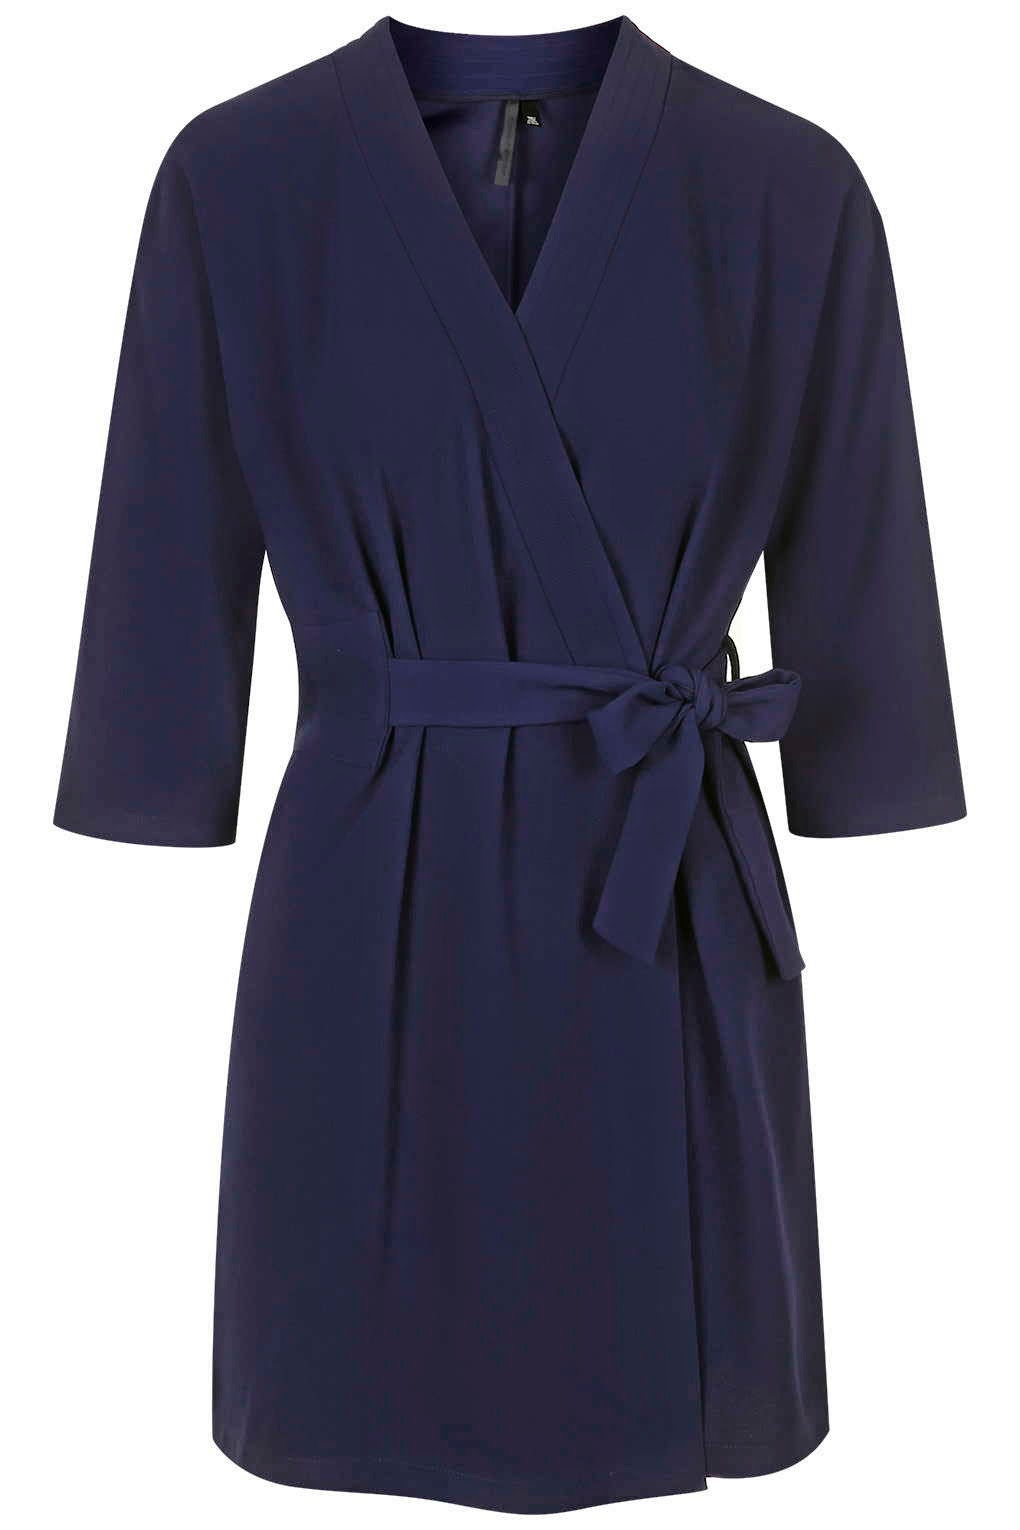 navy wrap tie dress